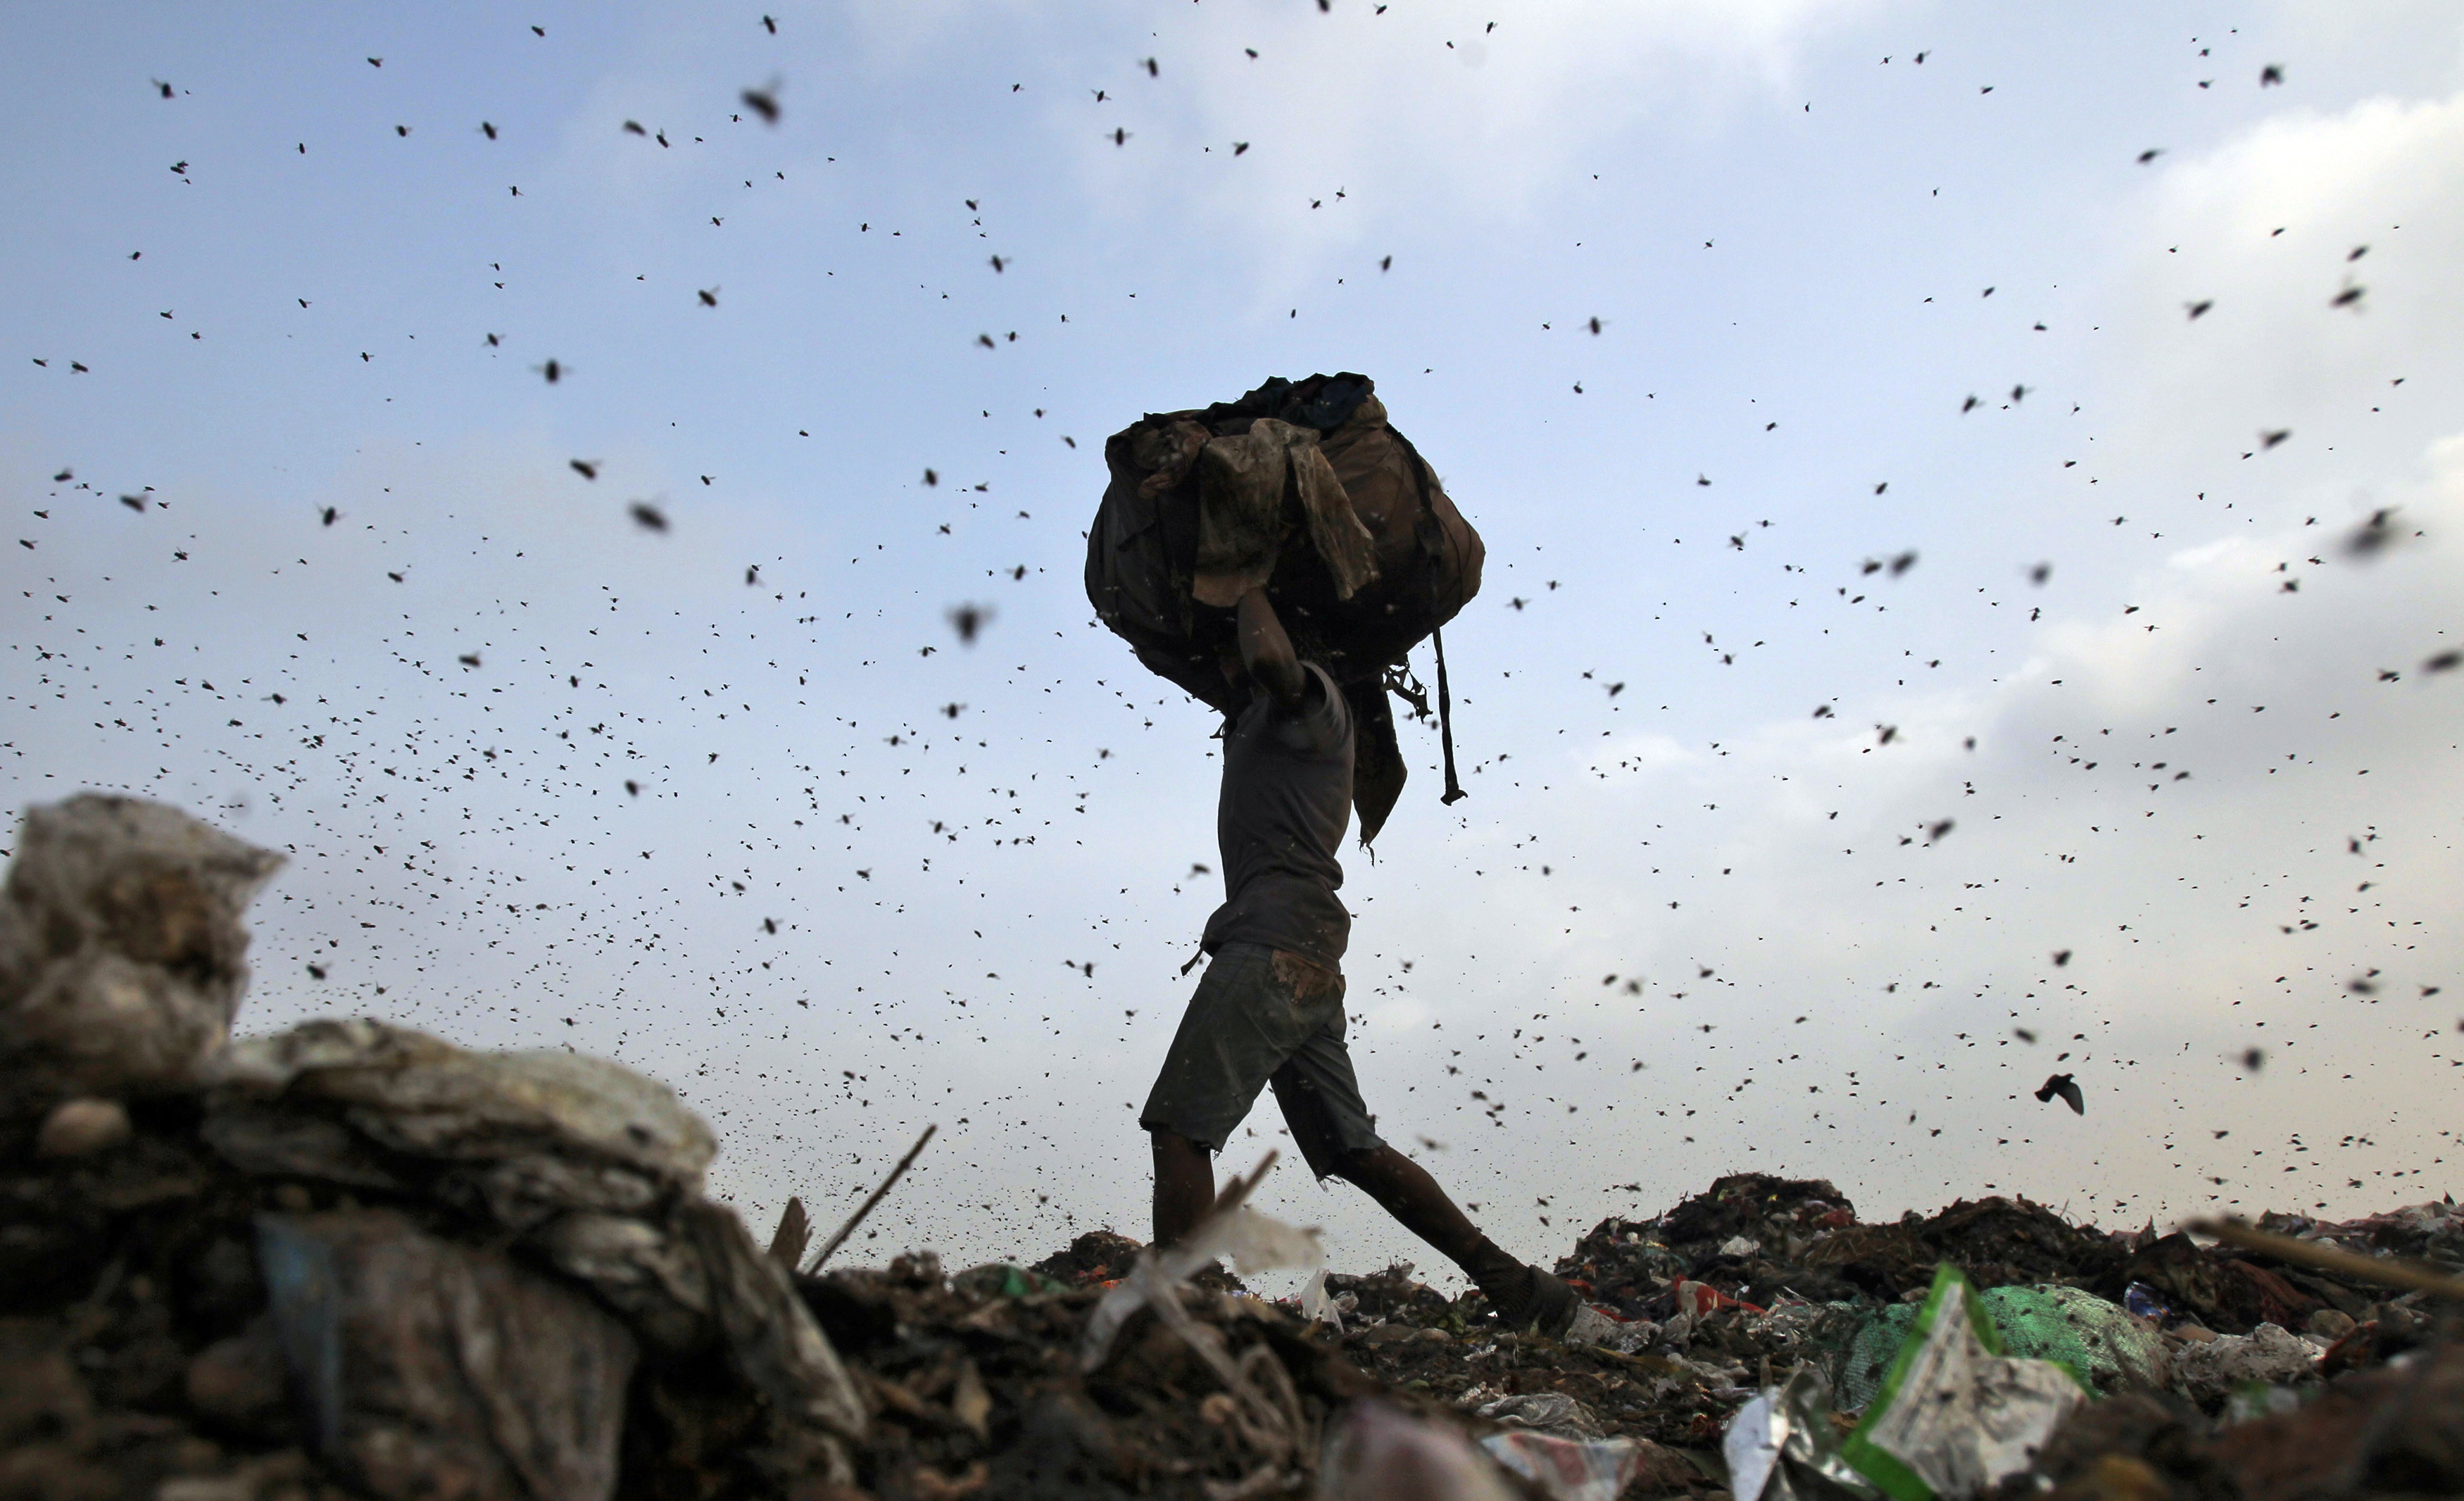 Insects and birds fly in a dump yard as a rag picker collects scraps in New Delhi June 27, 2013. REUTERS/Anindito Mukherjee (INDIA - Tags: ENVIRONMENT SOCIETY TPX IMAGES OF THE DAY POVERTY) - GM1E96R13TG01